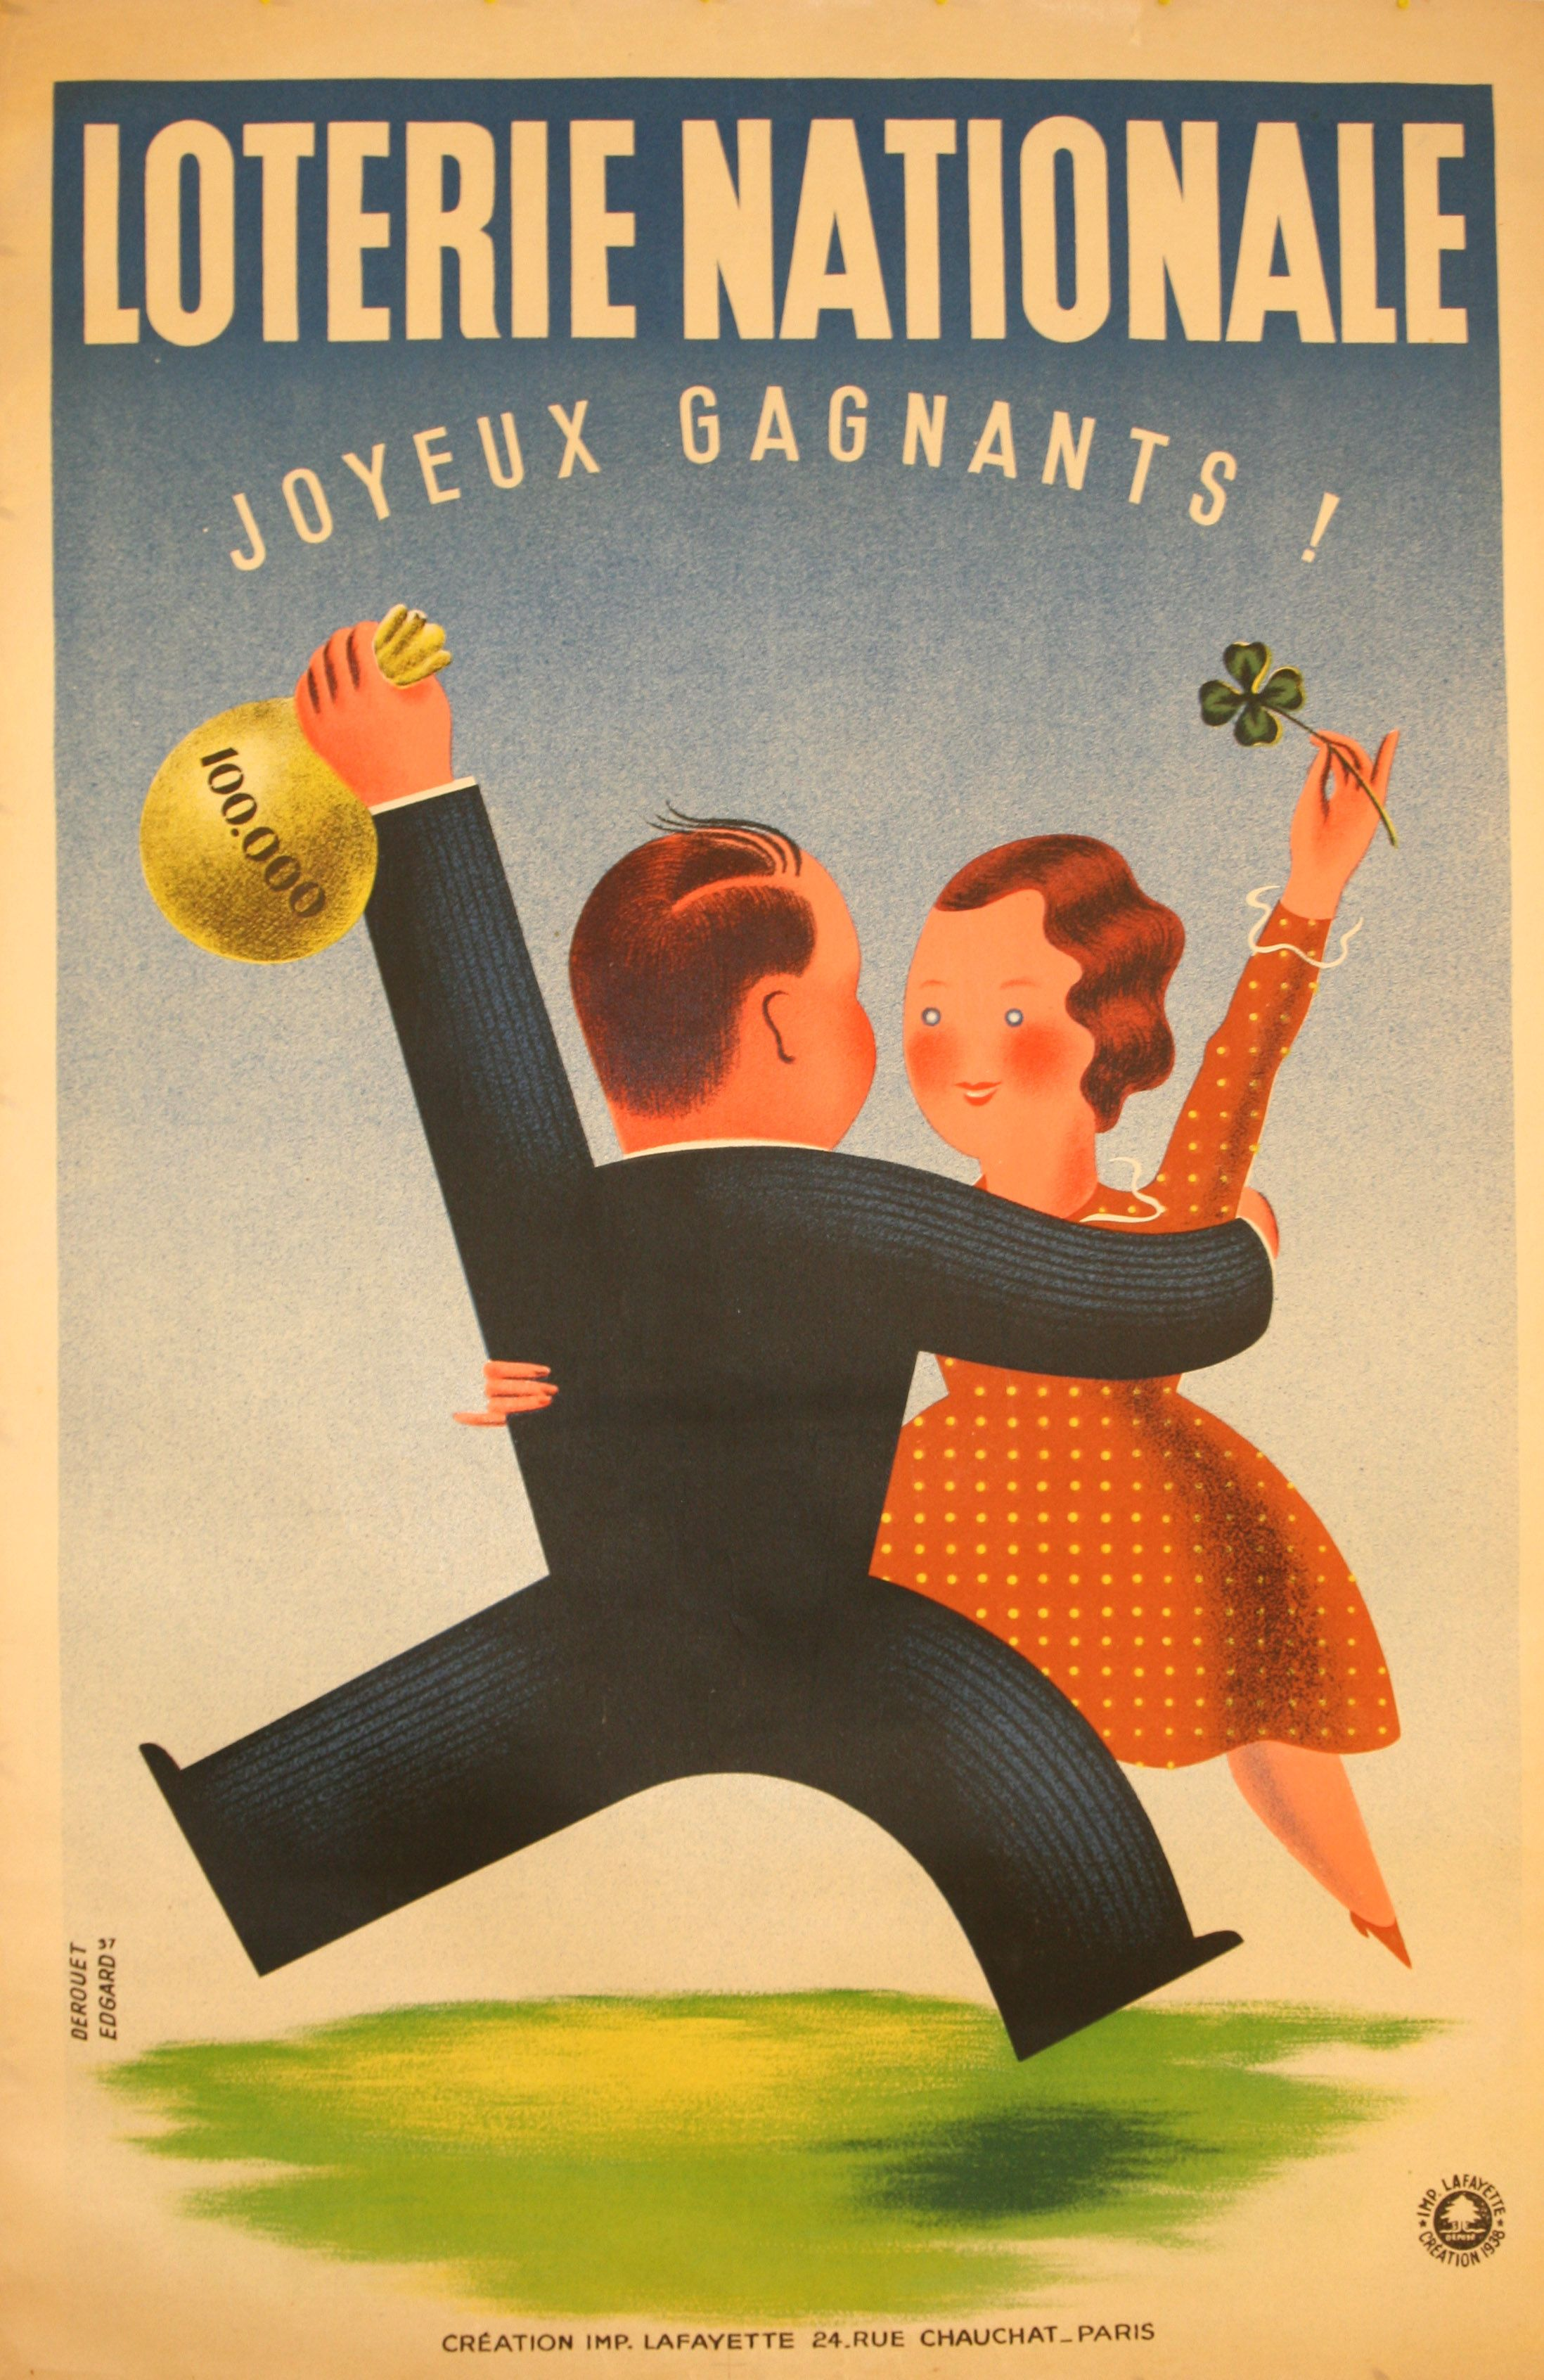 Loterie Nationale Dance, 1937 - original vintage poster by ...